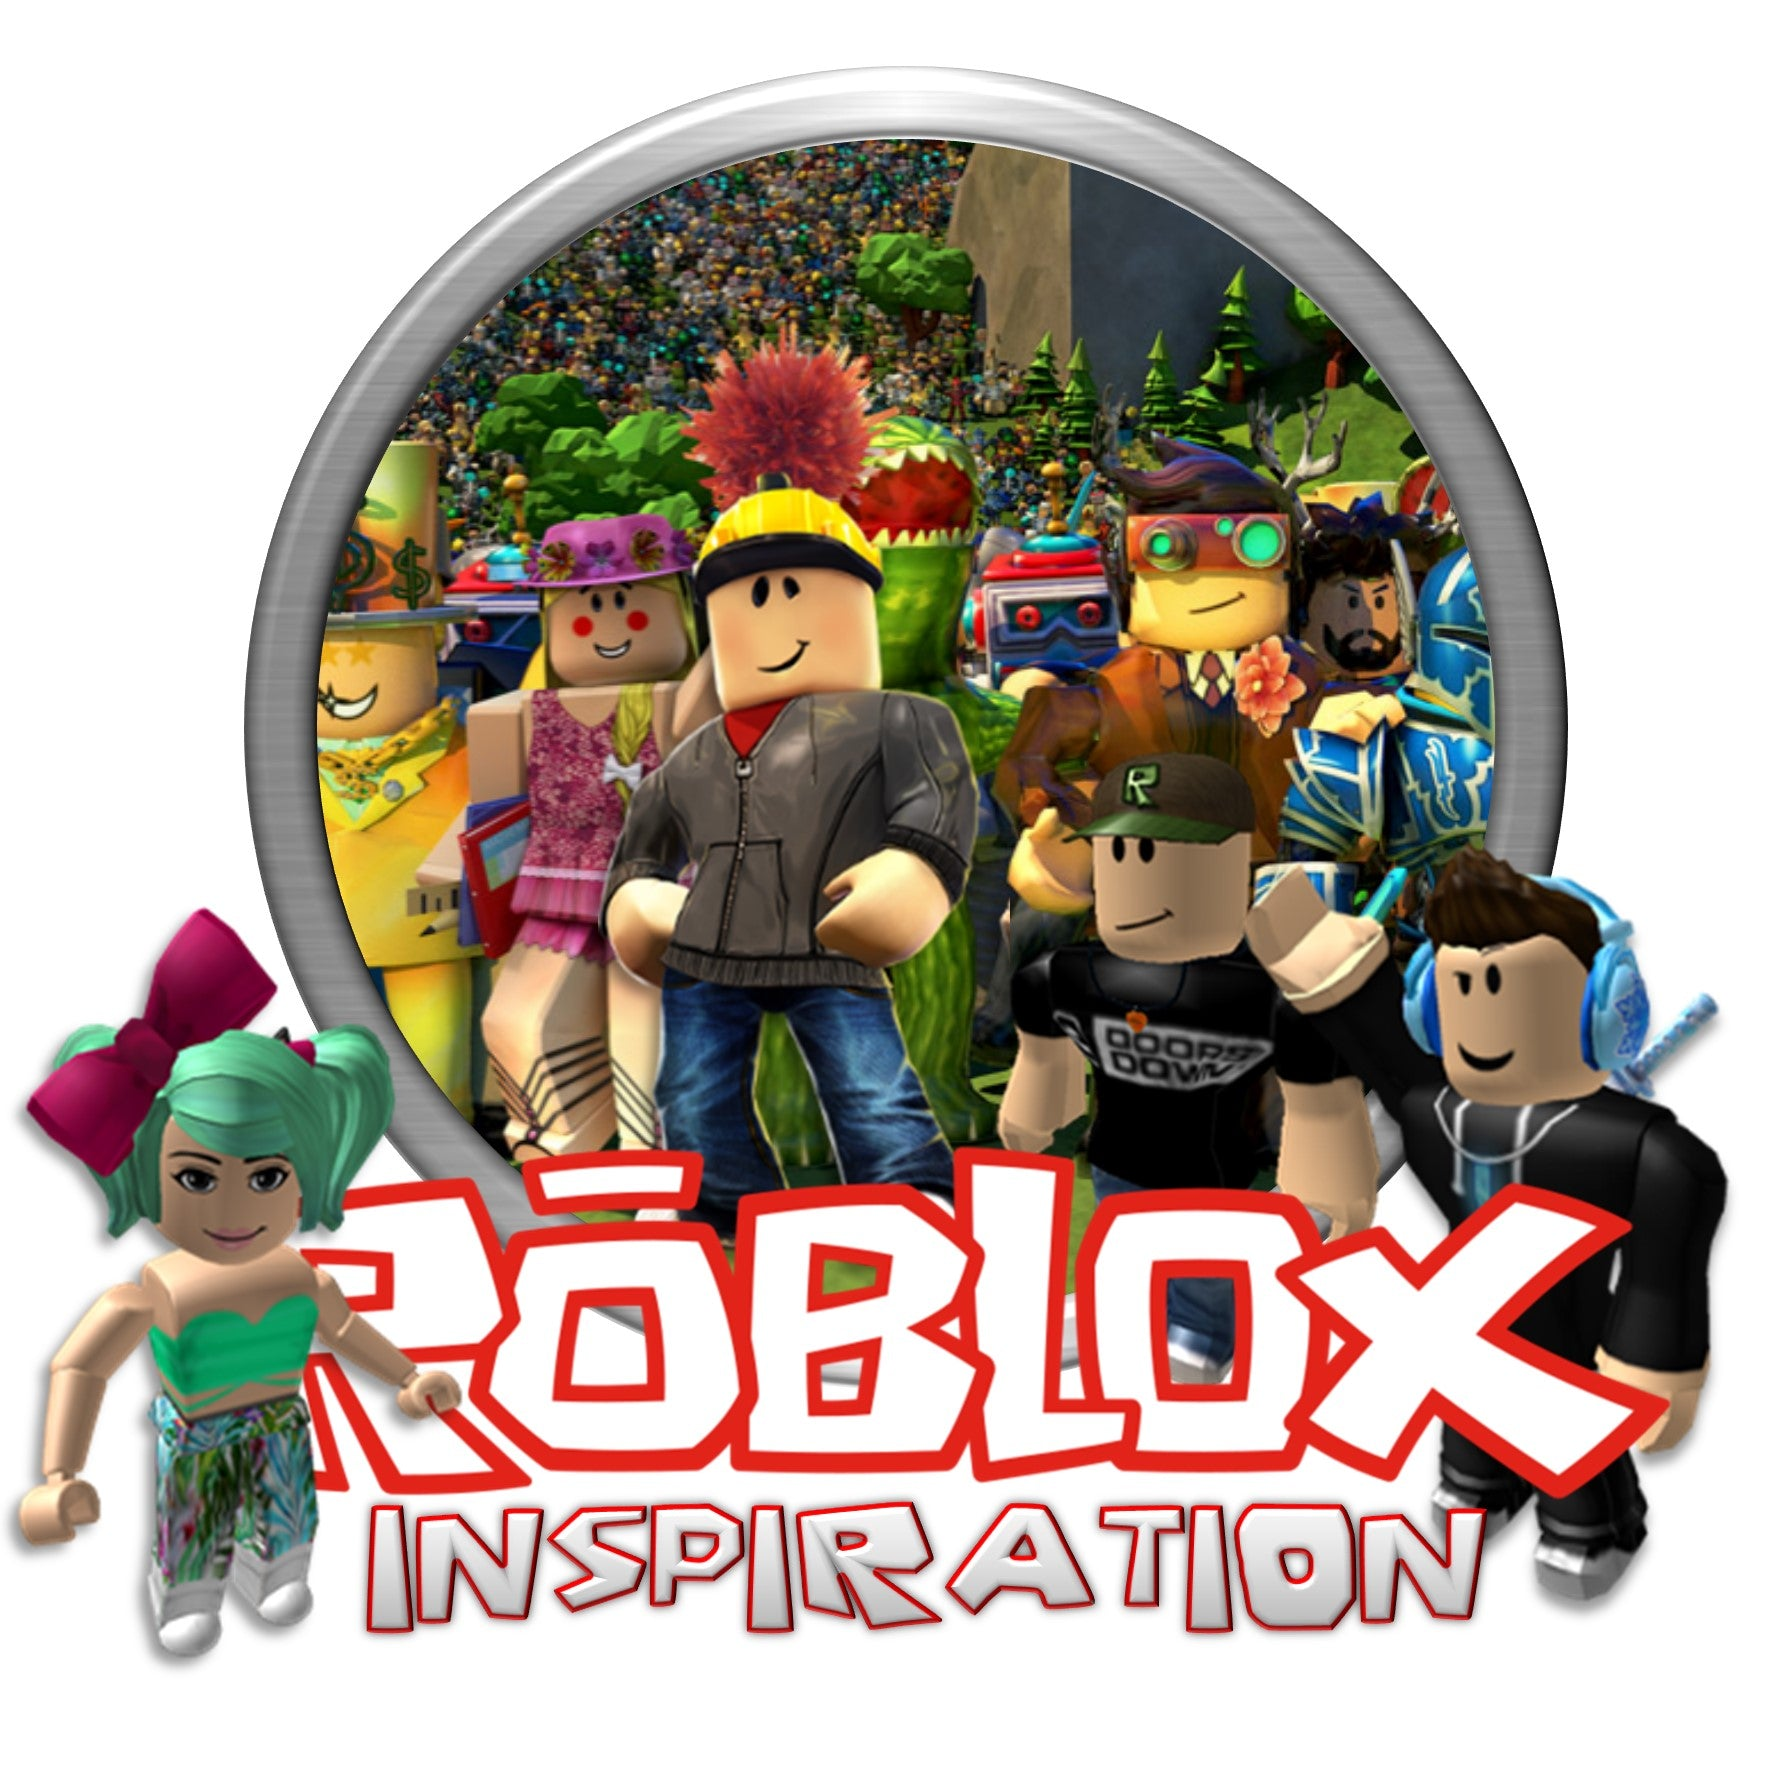 ROBLOX INSPIRATION